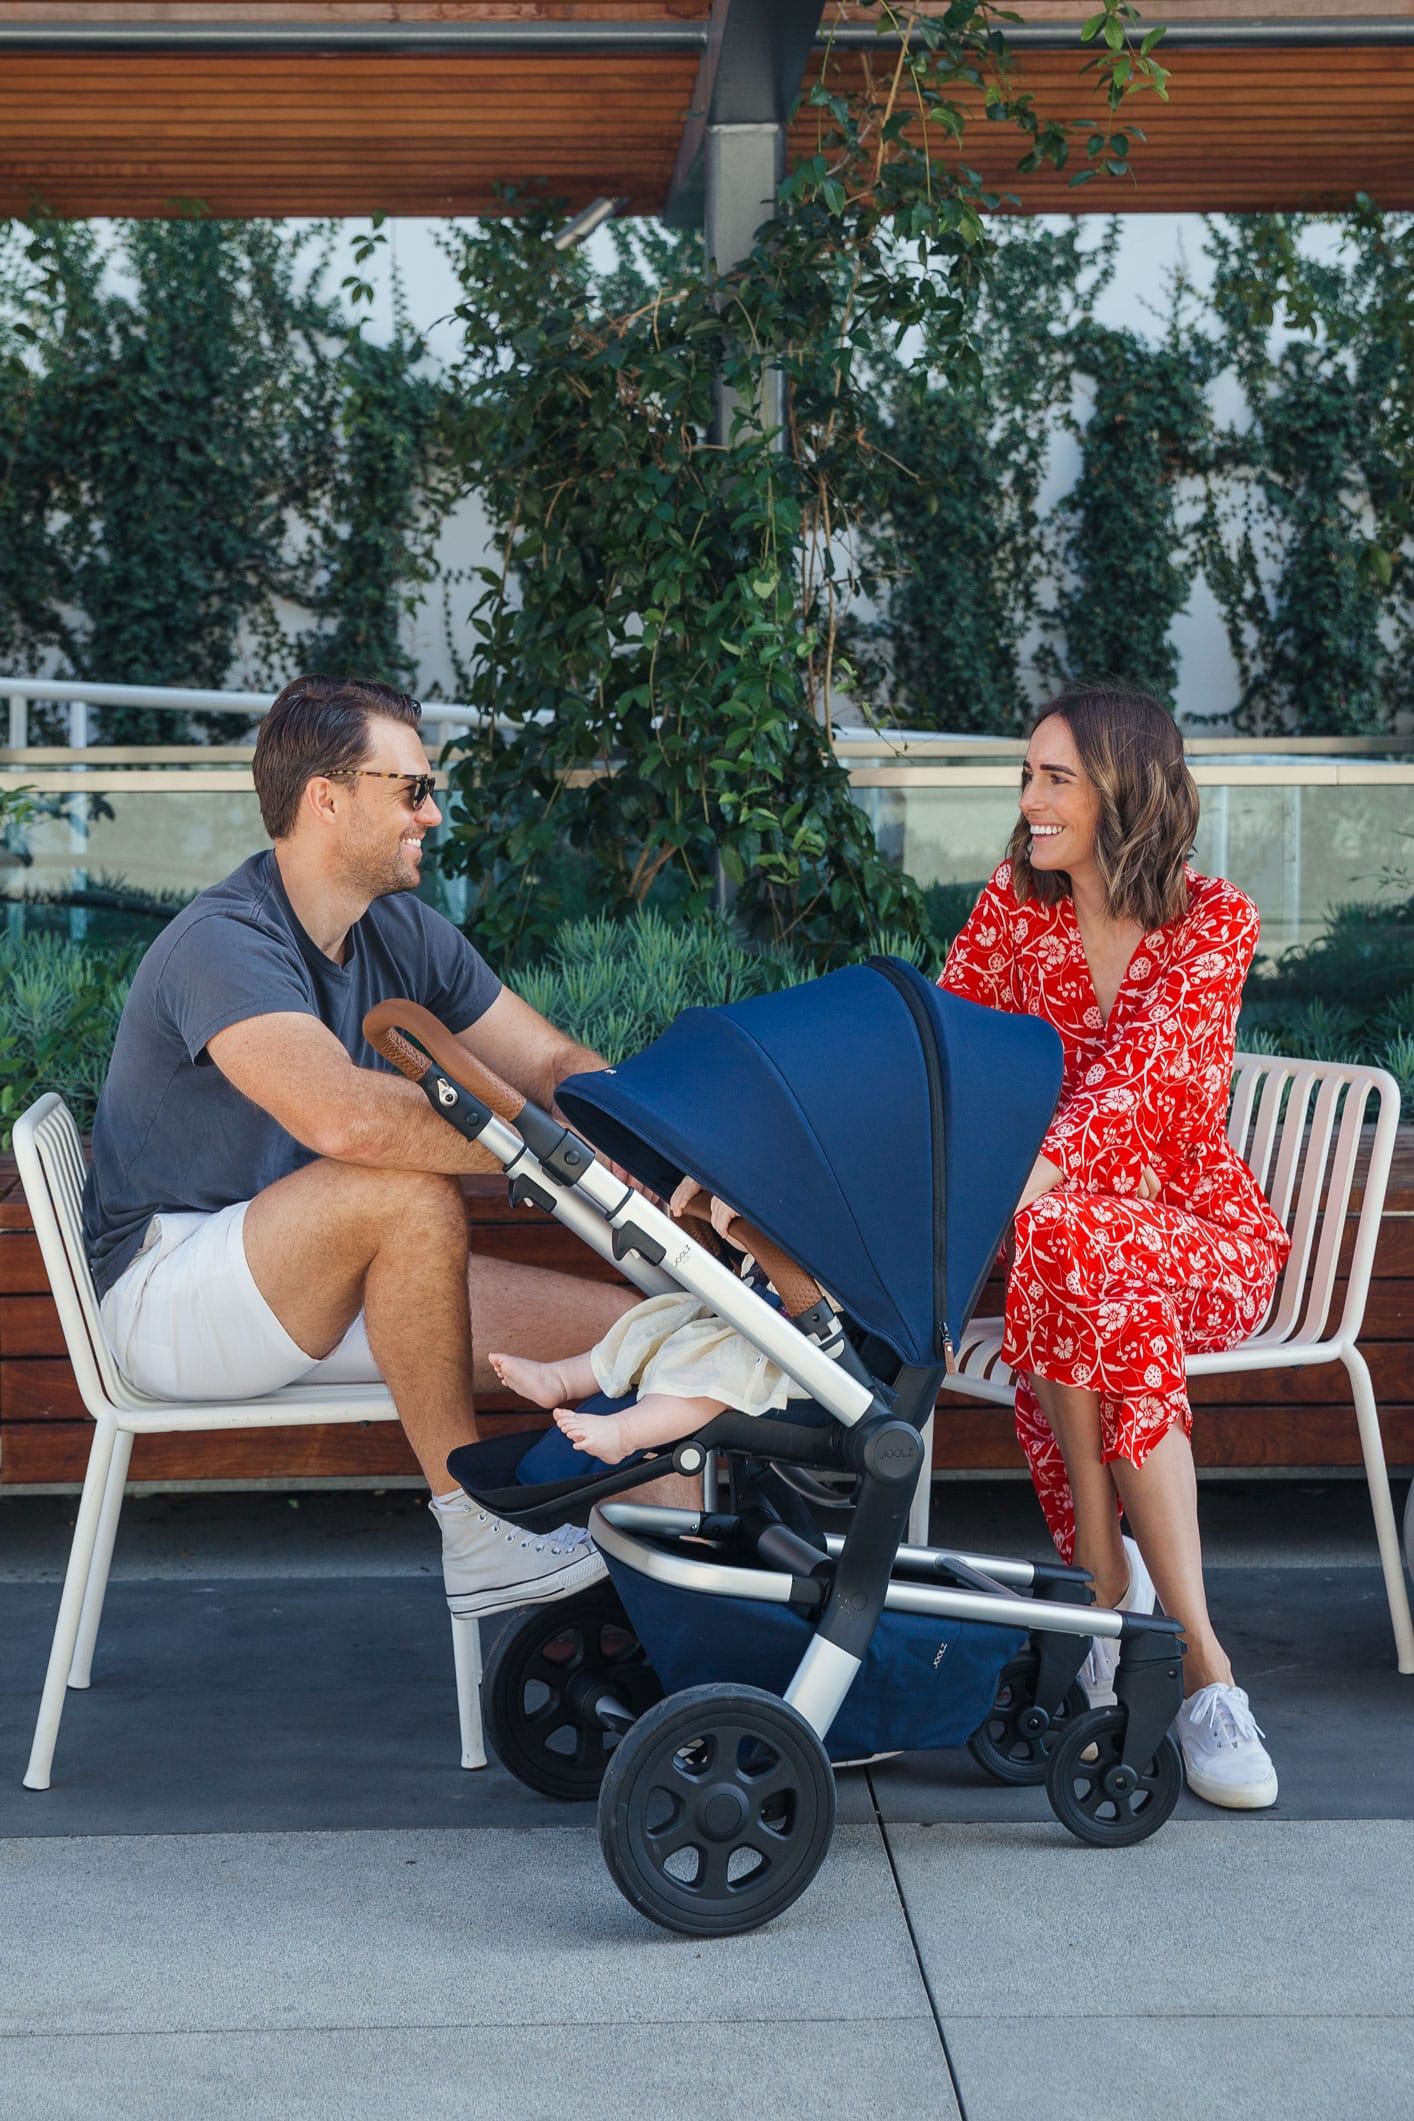 The Joolz Stroller Baby Steps Upgrading Honor S Stroller Front Roe By